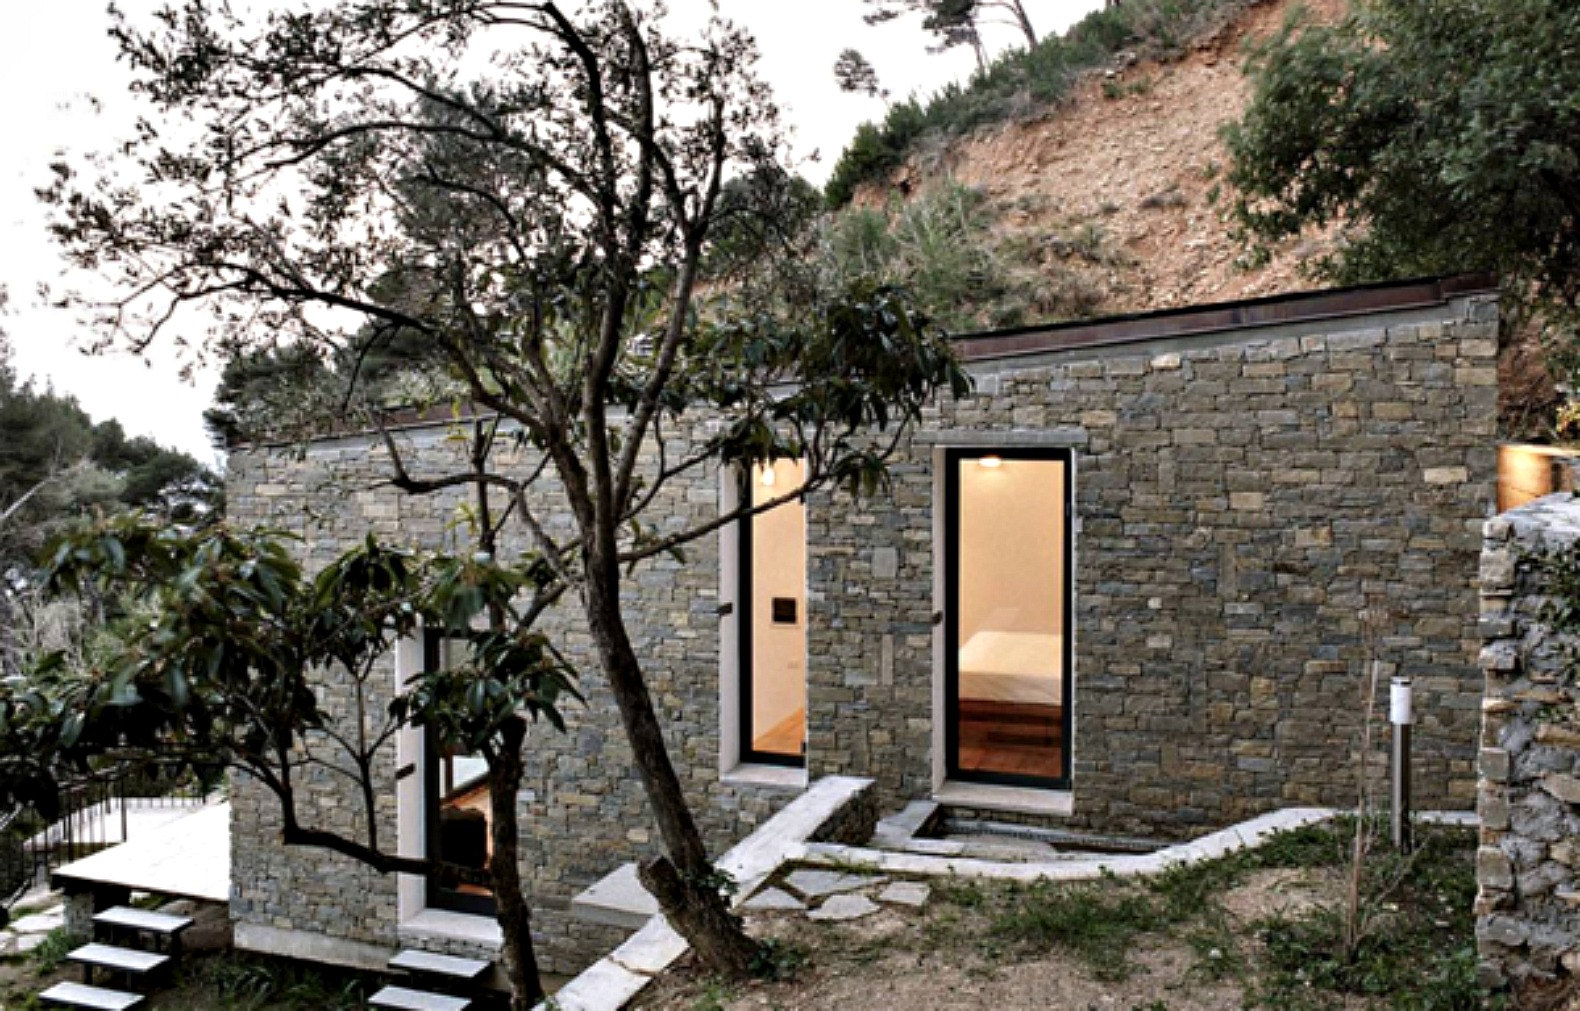 377-square foot home built into the Turin hillside hides a full kitchen under the stairs